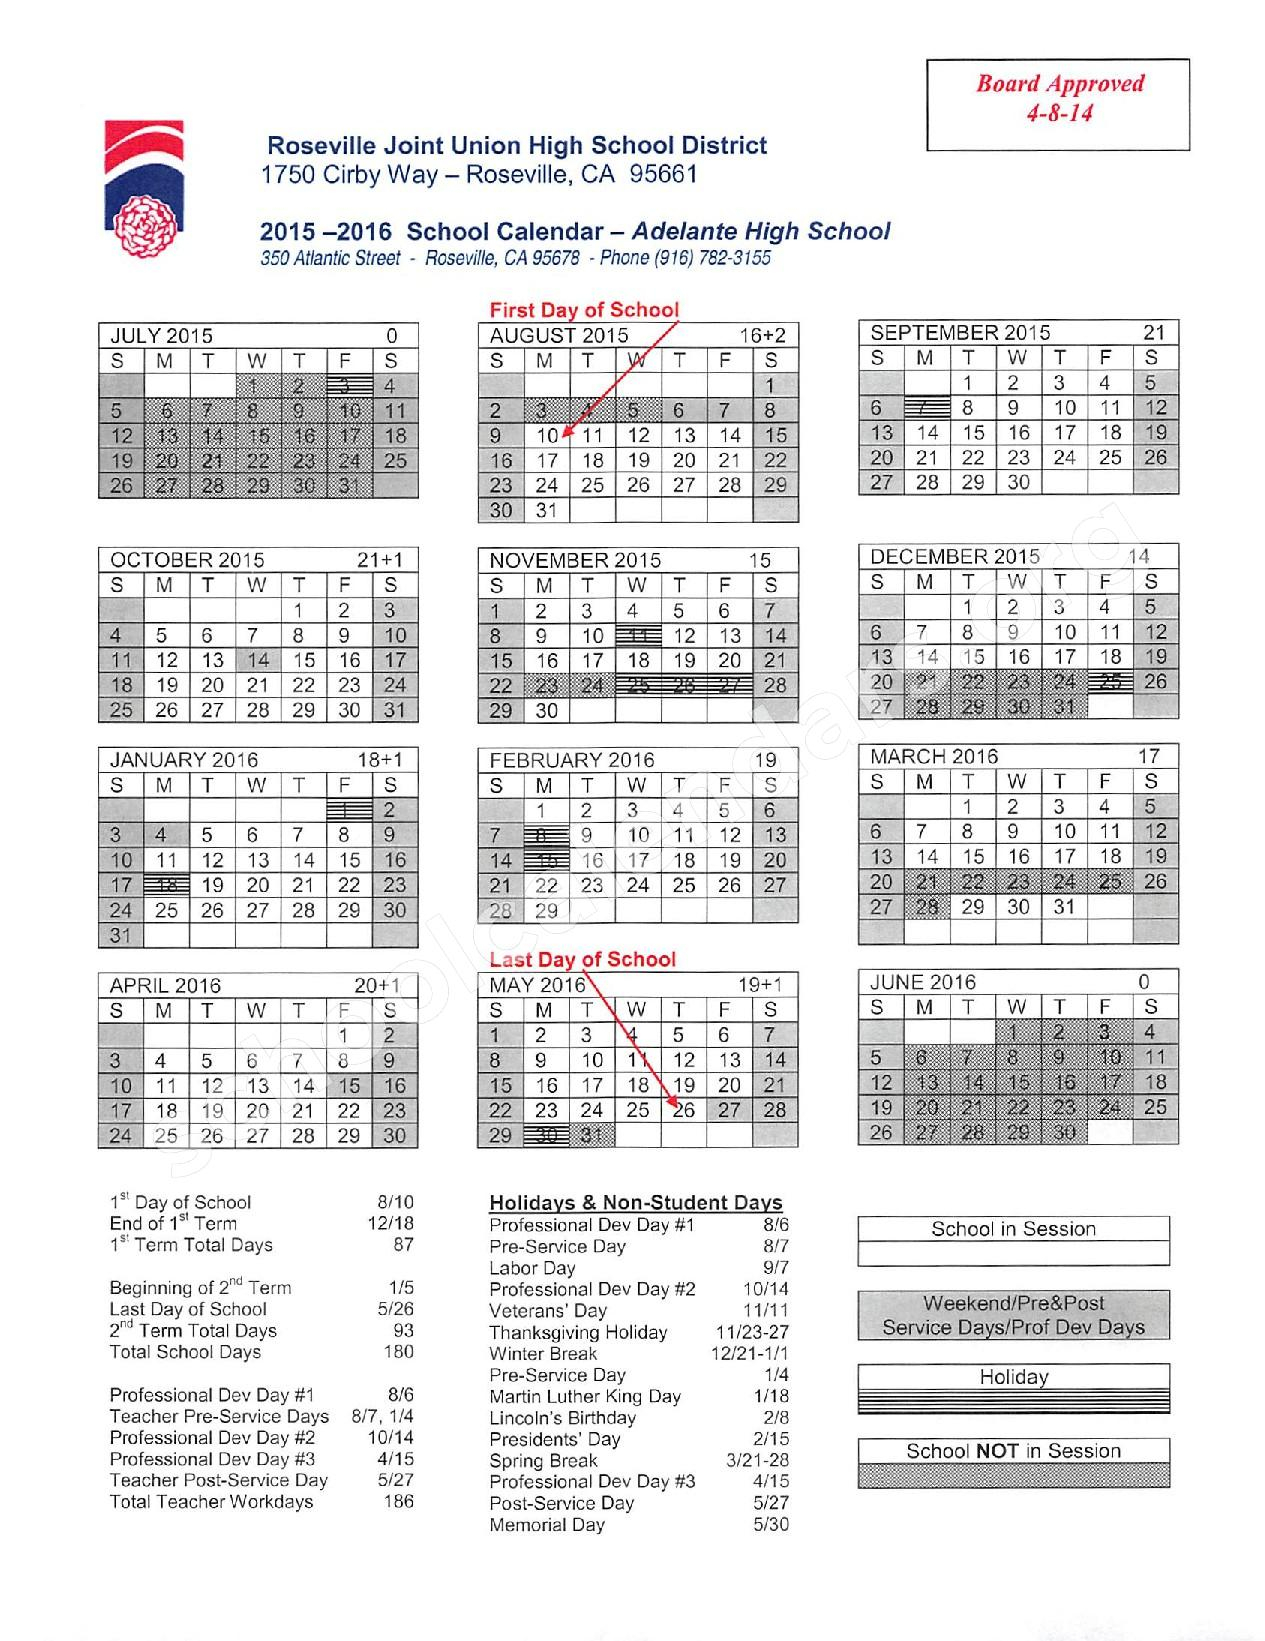 Roseville Joint Union High School District Calendars In Aiken High School Sc Calendar For 2015